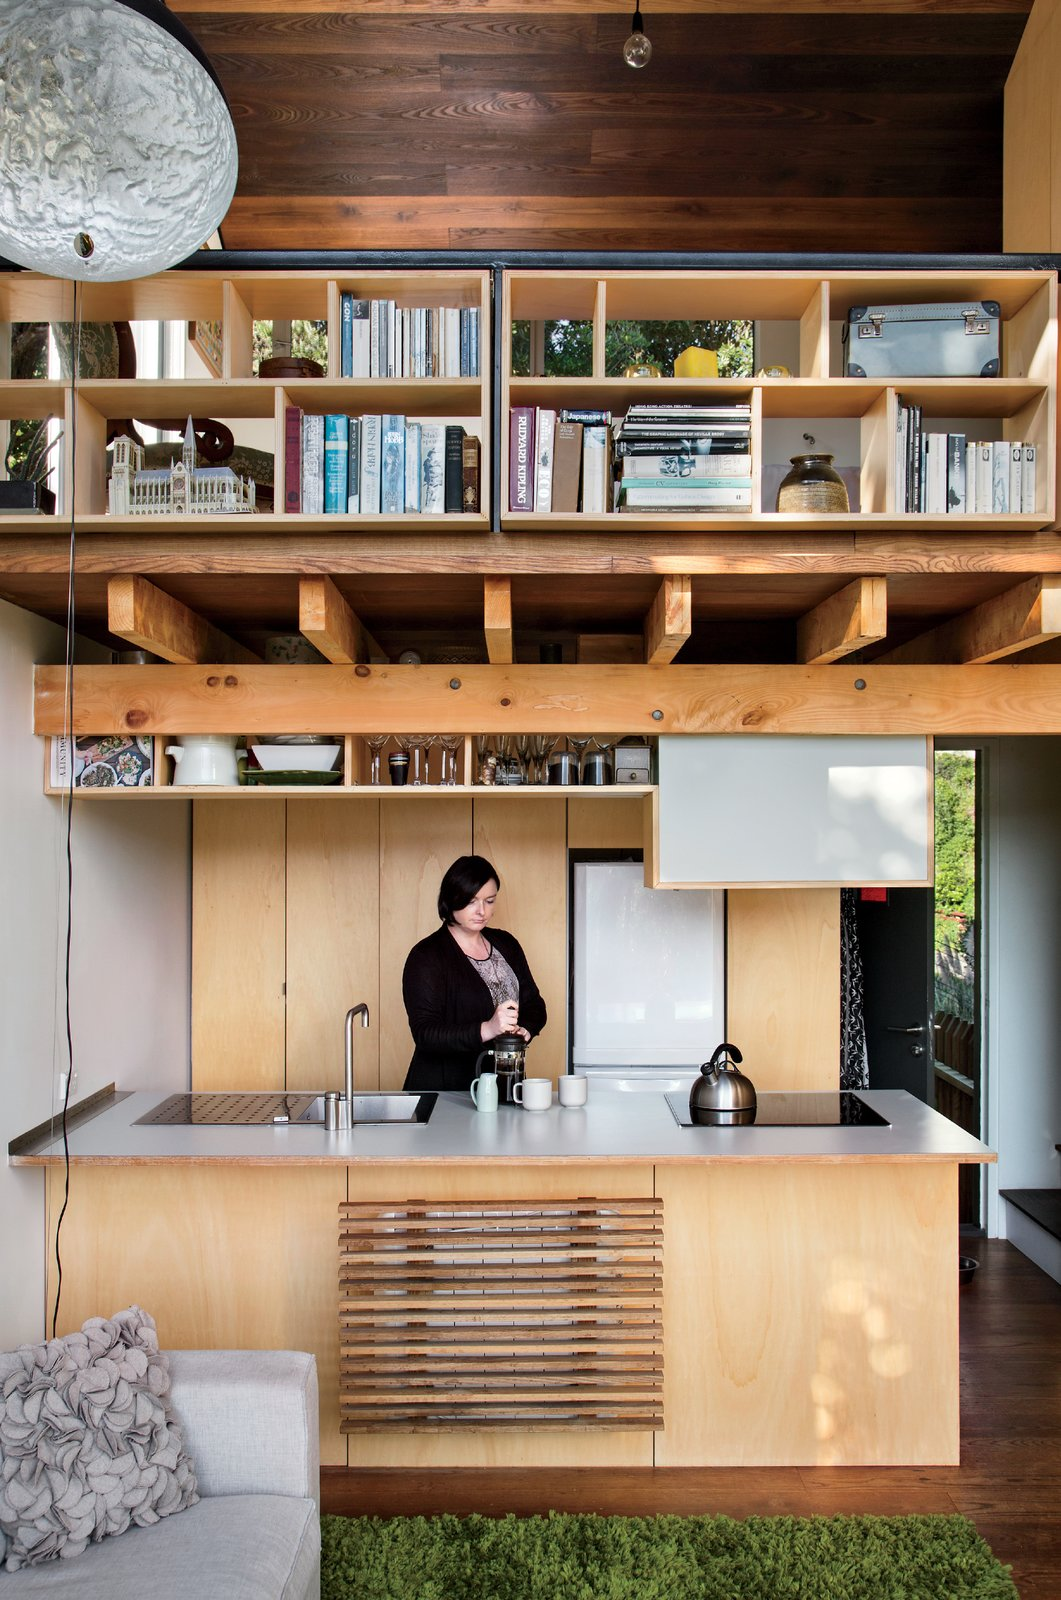 On the ground floor, Simpson's fiancée, Krysty Peebles, makes coffee in a compact kitchen outfitted with a Foraze Panni sink, Bosch induction cooktop, and Mitsubishi refrigerator.  Solutions For Tiny Kitchens by Aileen Kwun from A Home's High Ceilings Are Responsible for Some Impressive Views